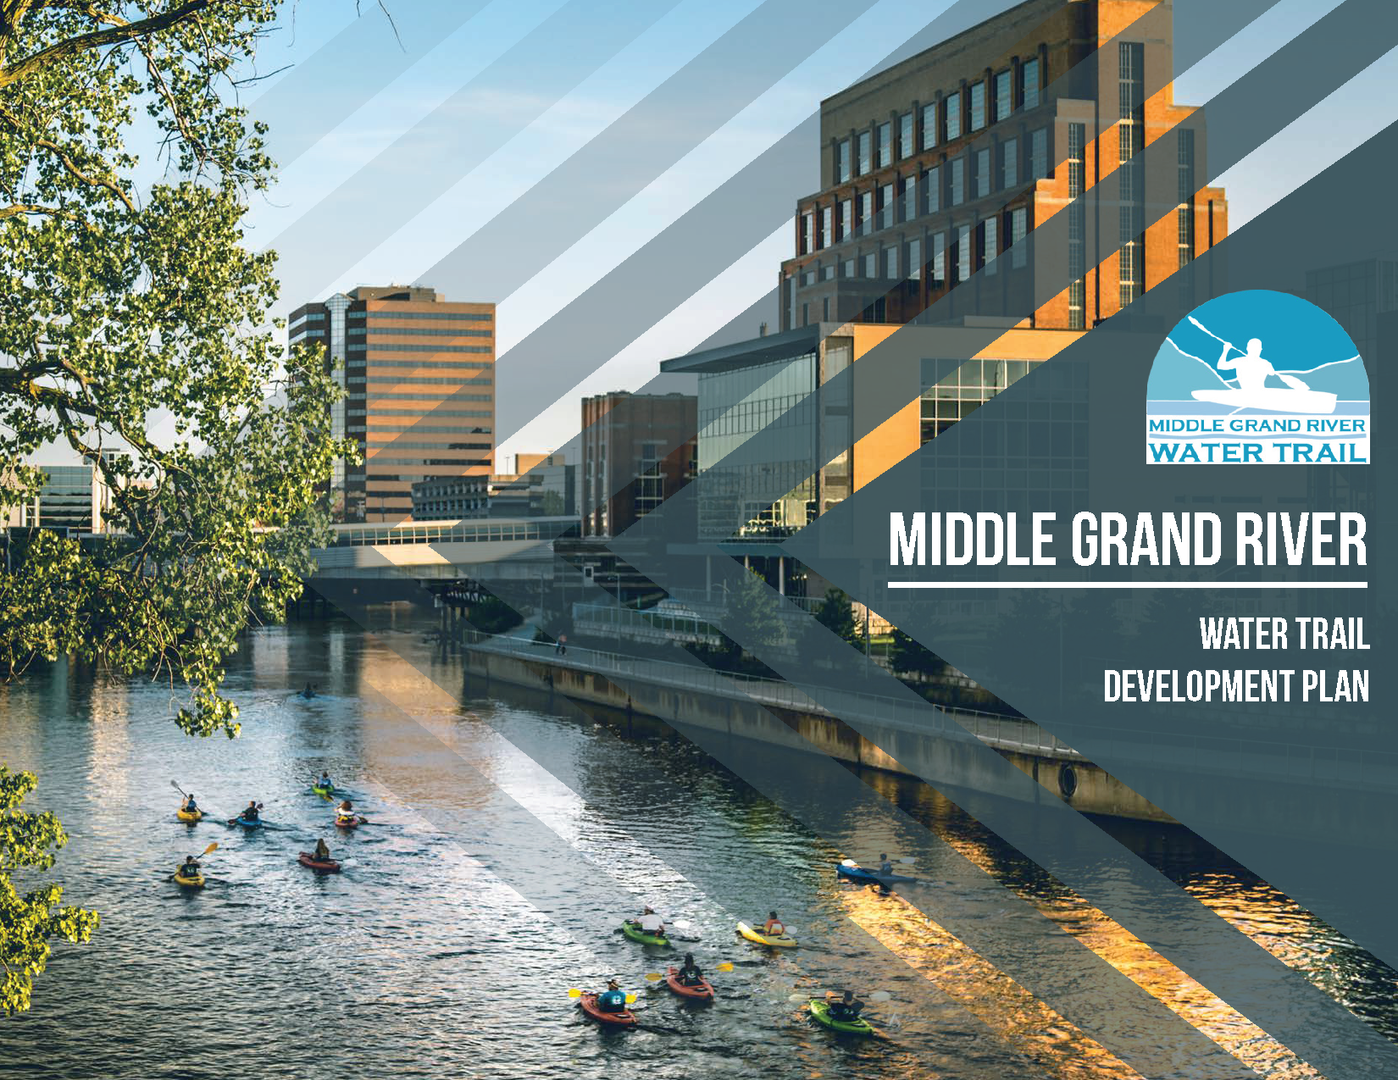 Middle Grand River Water Trail Development Plan